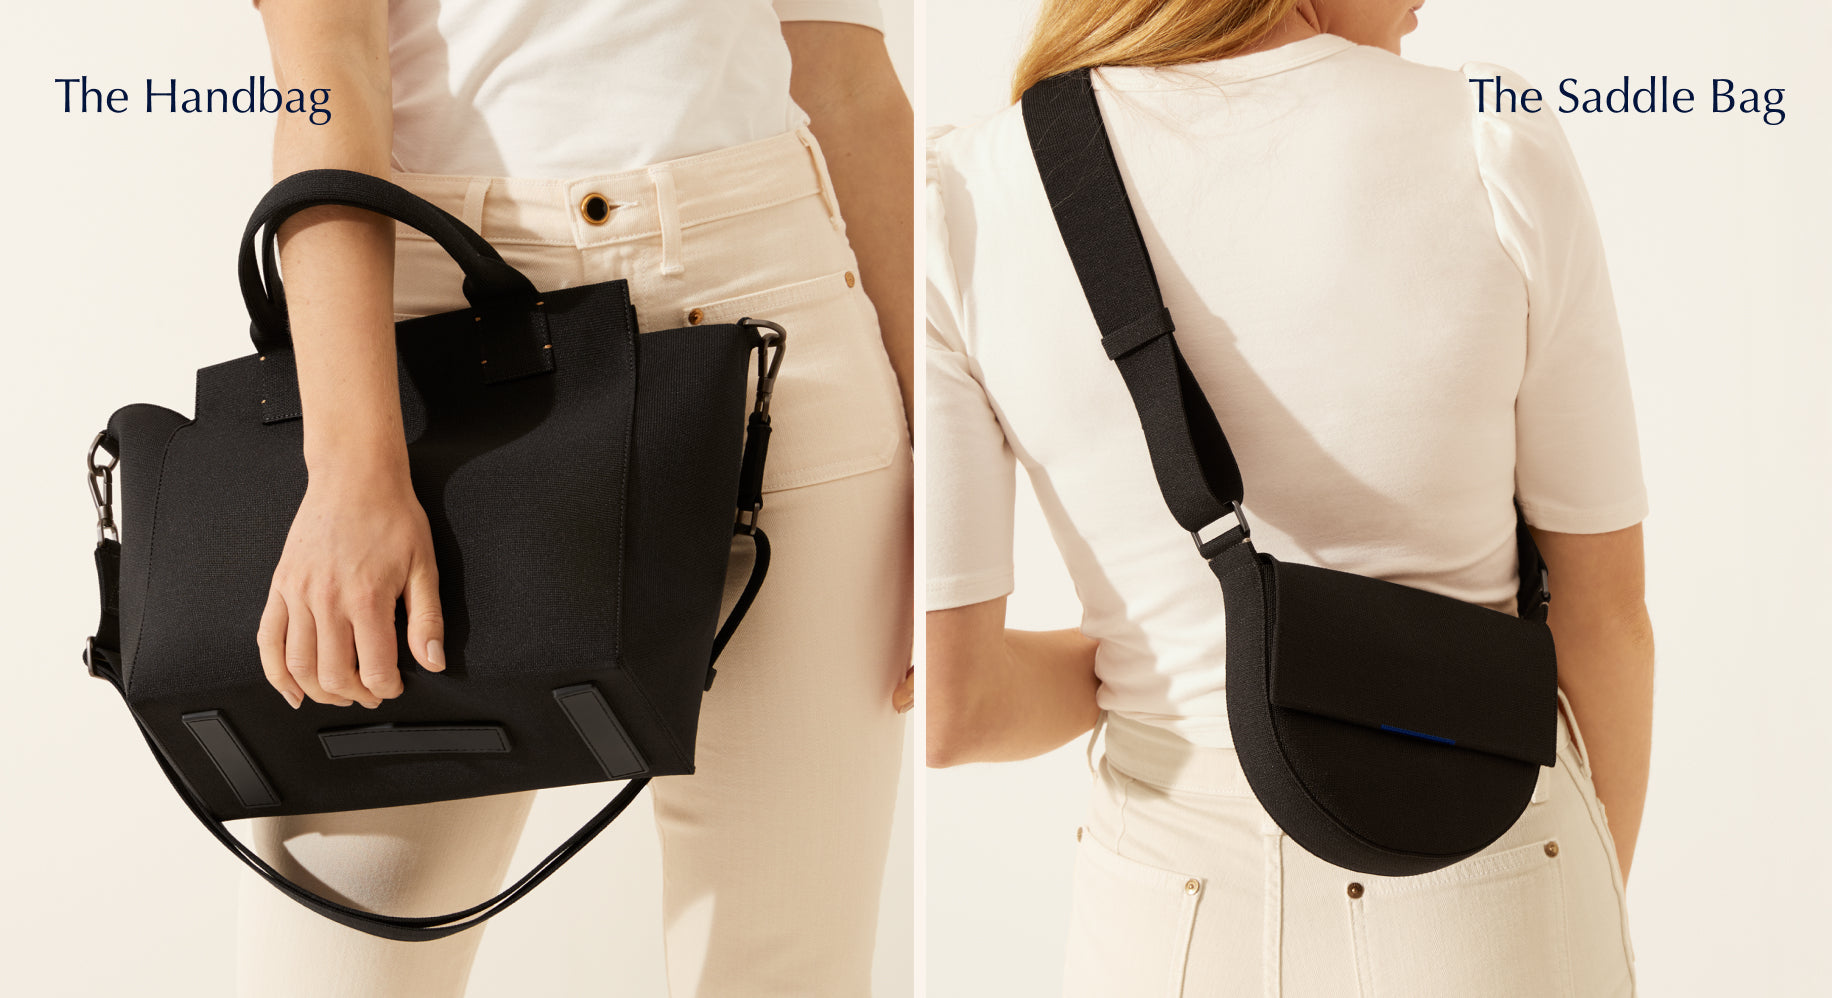 On the left, model holding The Handbag in Total Black. On the right, model wearing The Saddle Bag in Total Black.